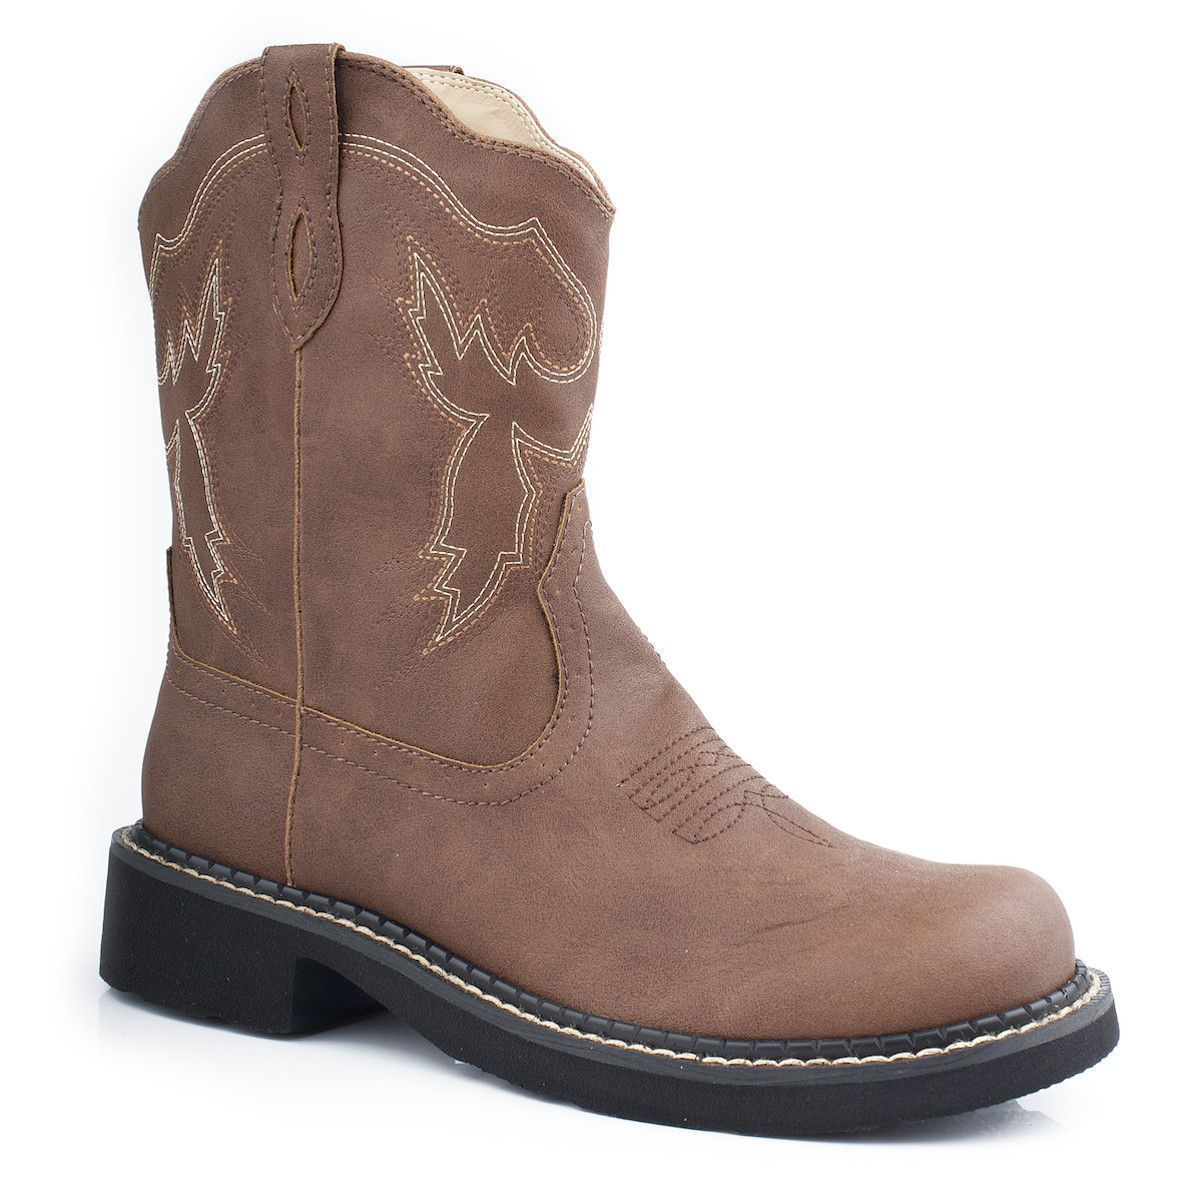 "Roper Womens Chunk Series II Brown Distressed Faux Leather 8"""" Cowboy Boots"